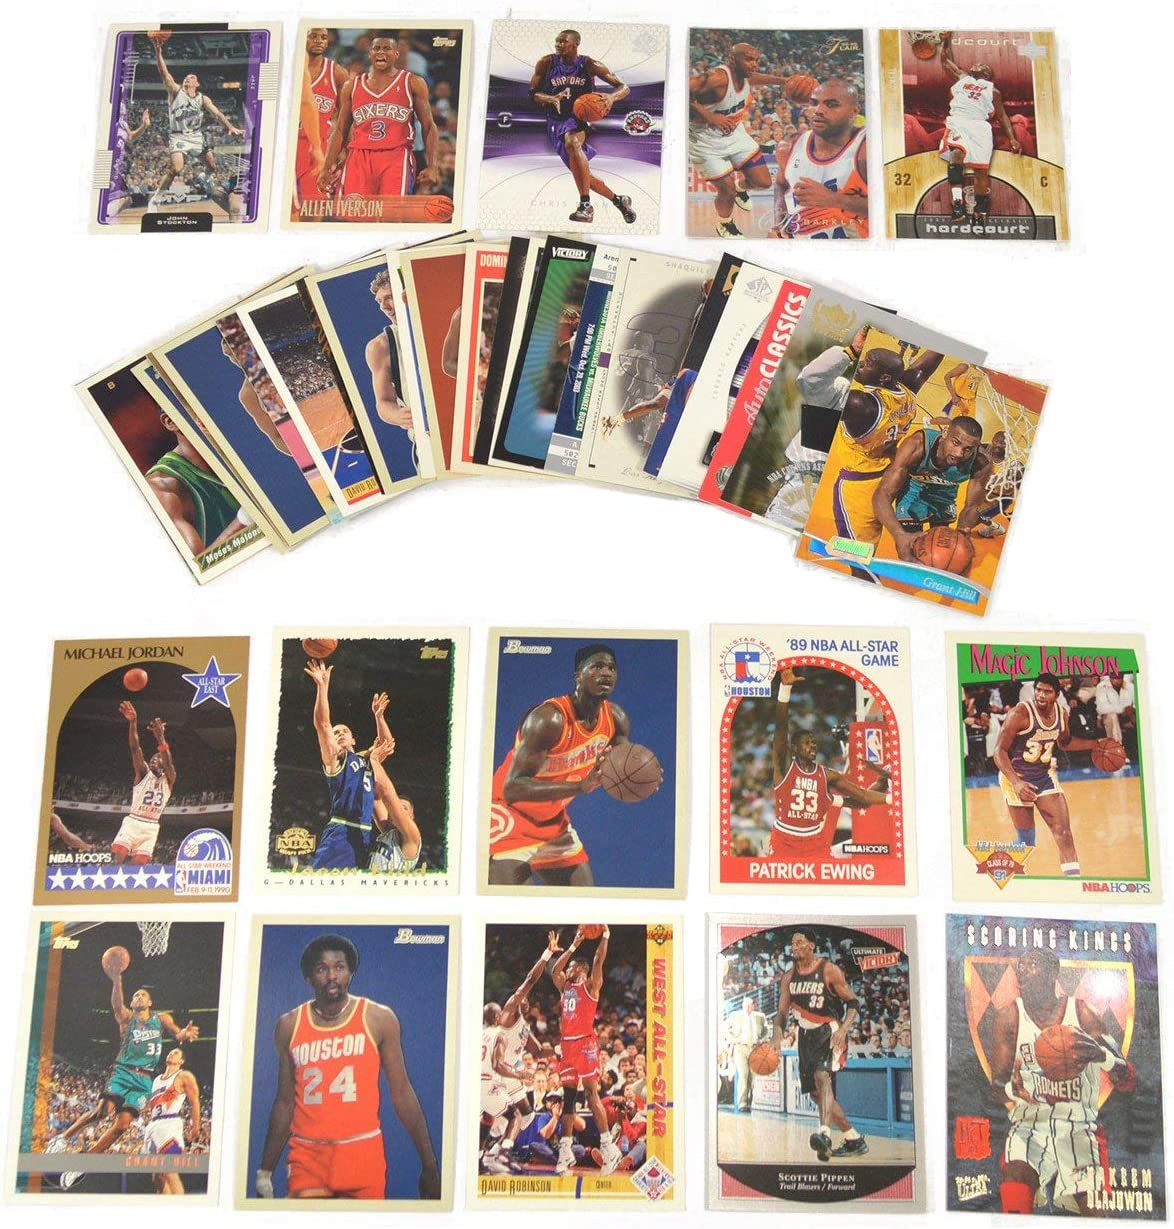 40 Basketball Hall-of-Fame & Superstar Cards Collection Including Players such as Michael Jordan, Magic Johnson, LeBron James. Ships in Protective Plastic Case Perfect for Gift Giving. : Sports & Outdoors